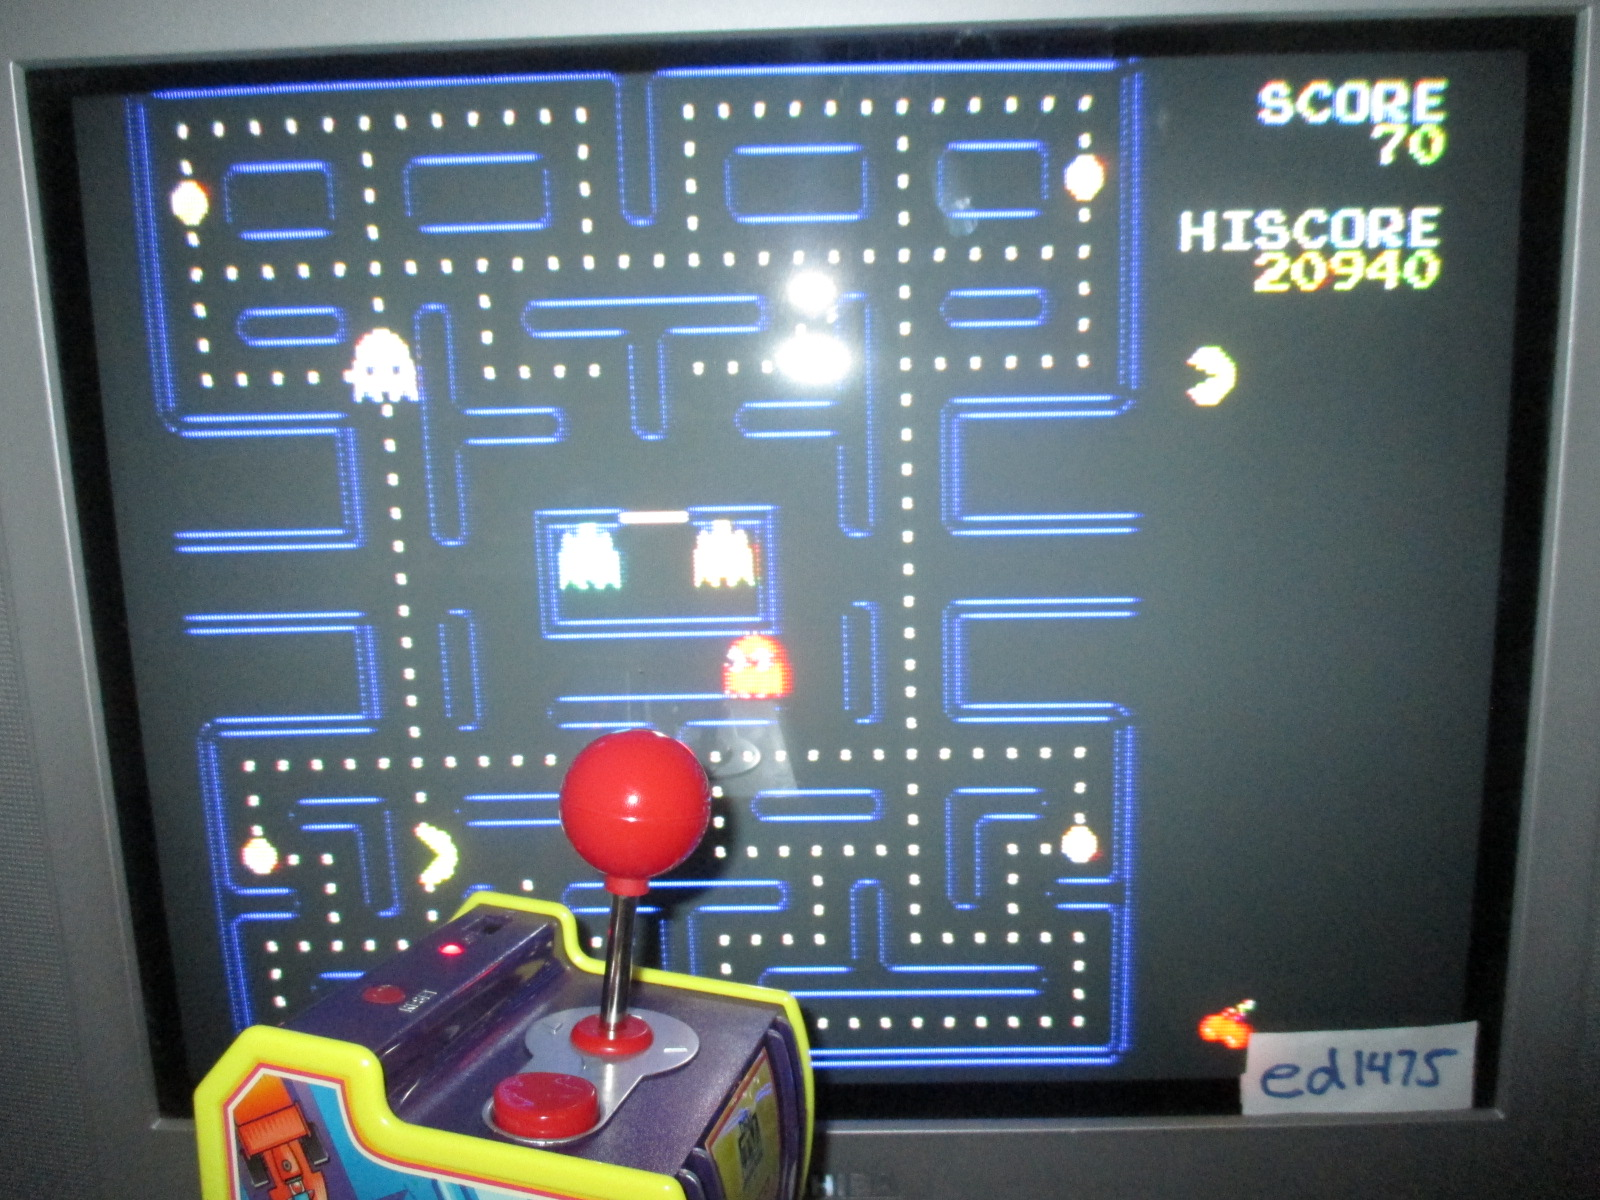 ed1475: Pac-Man (Jakks Pacific Pac-Man TV) 20,940 points on 2014-06-08 19:13:41